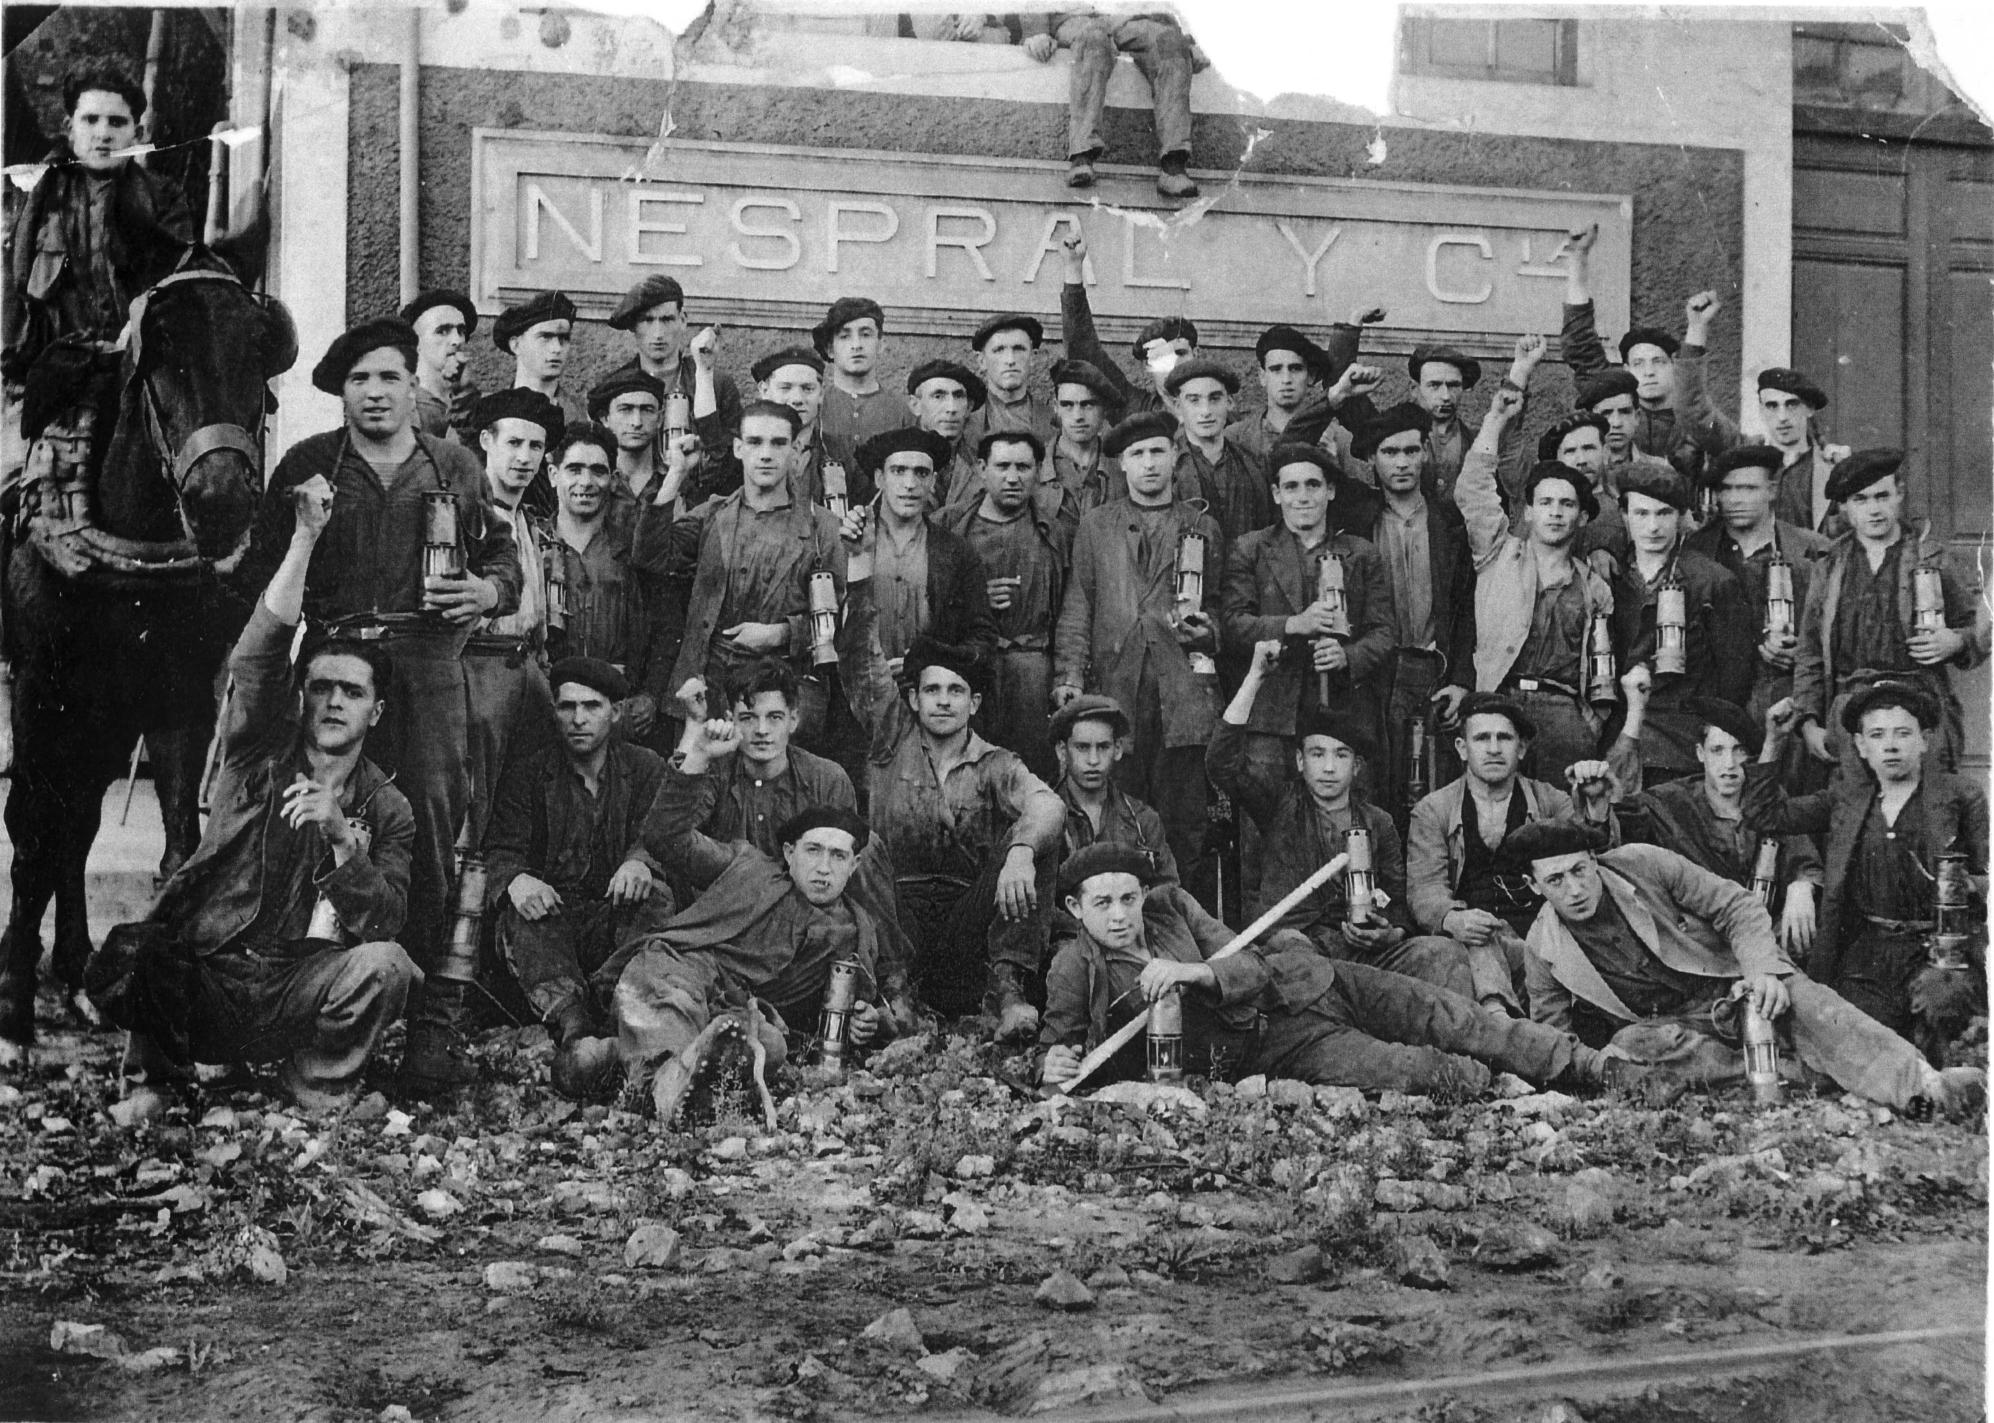 Black and white photo showing a group of c.50 workers, some with fists raised, others with tools or lamps in front of the Newspral Y Compania building in the early 1930s